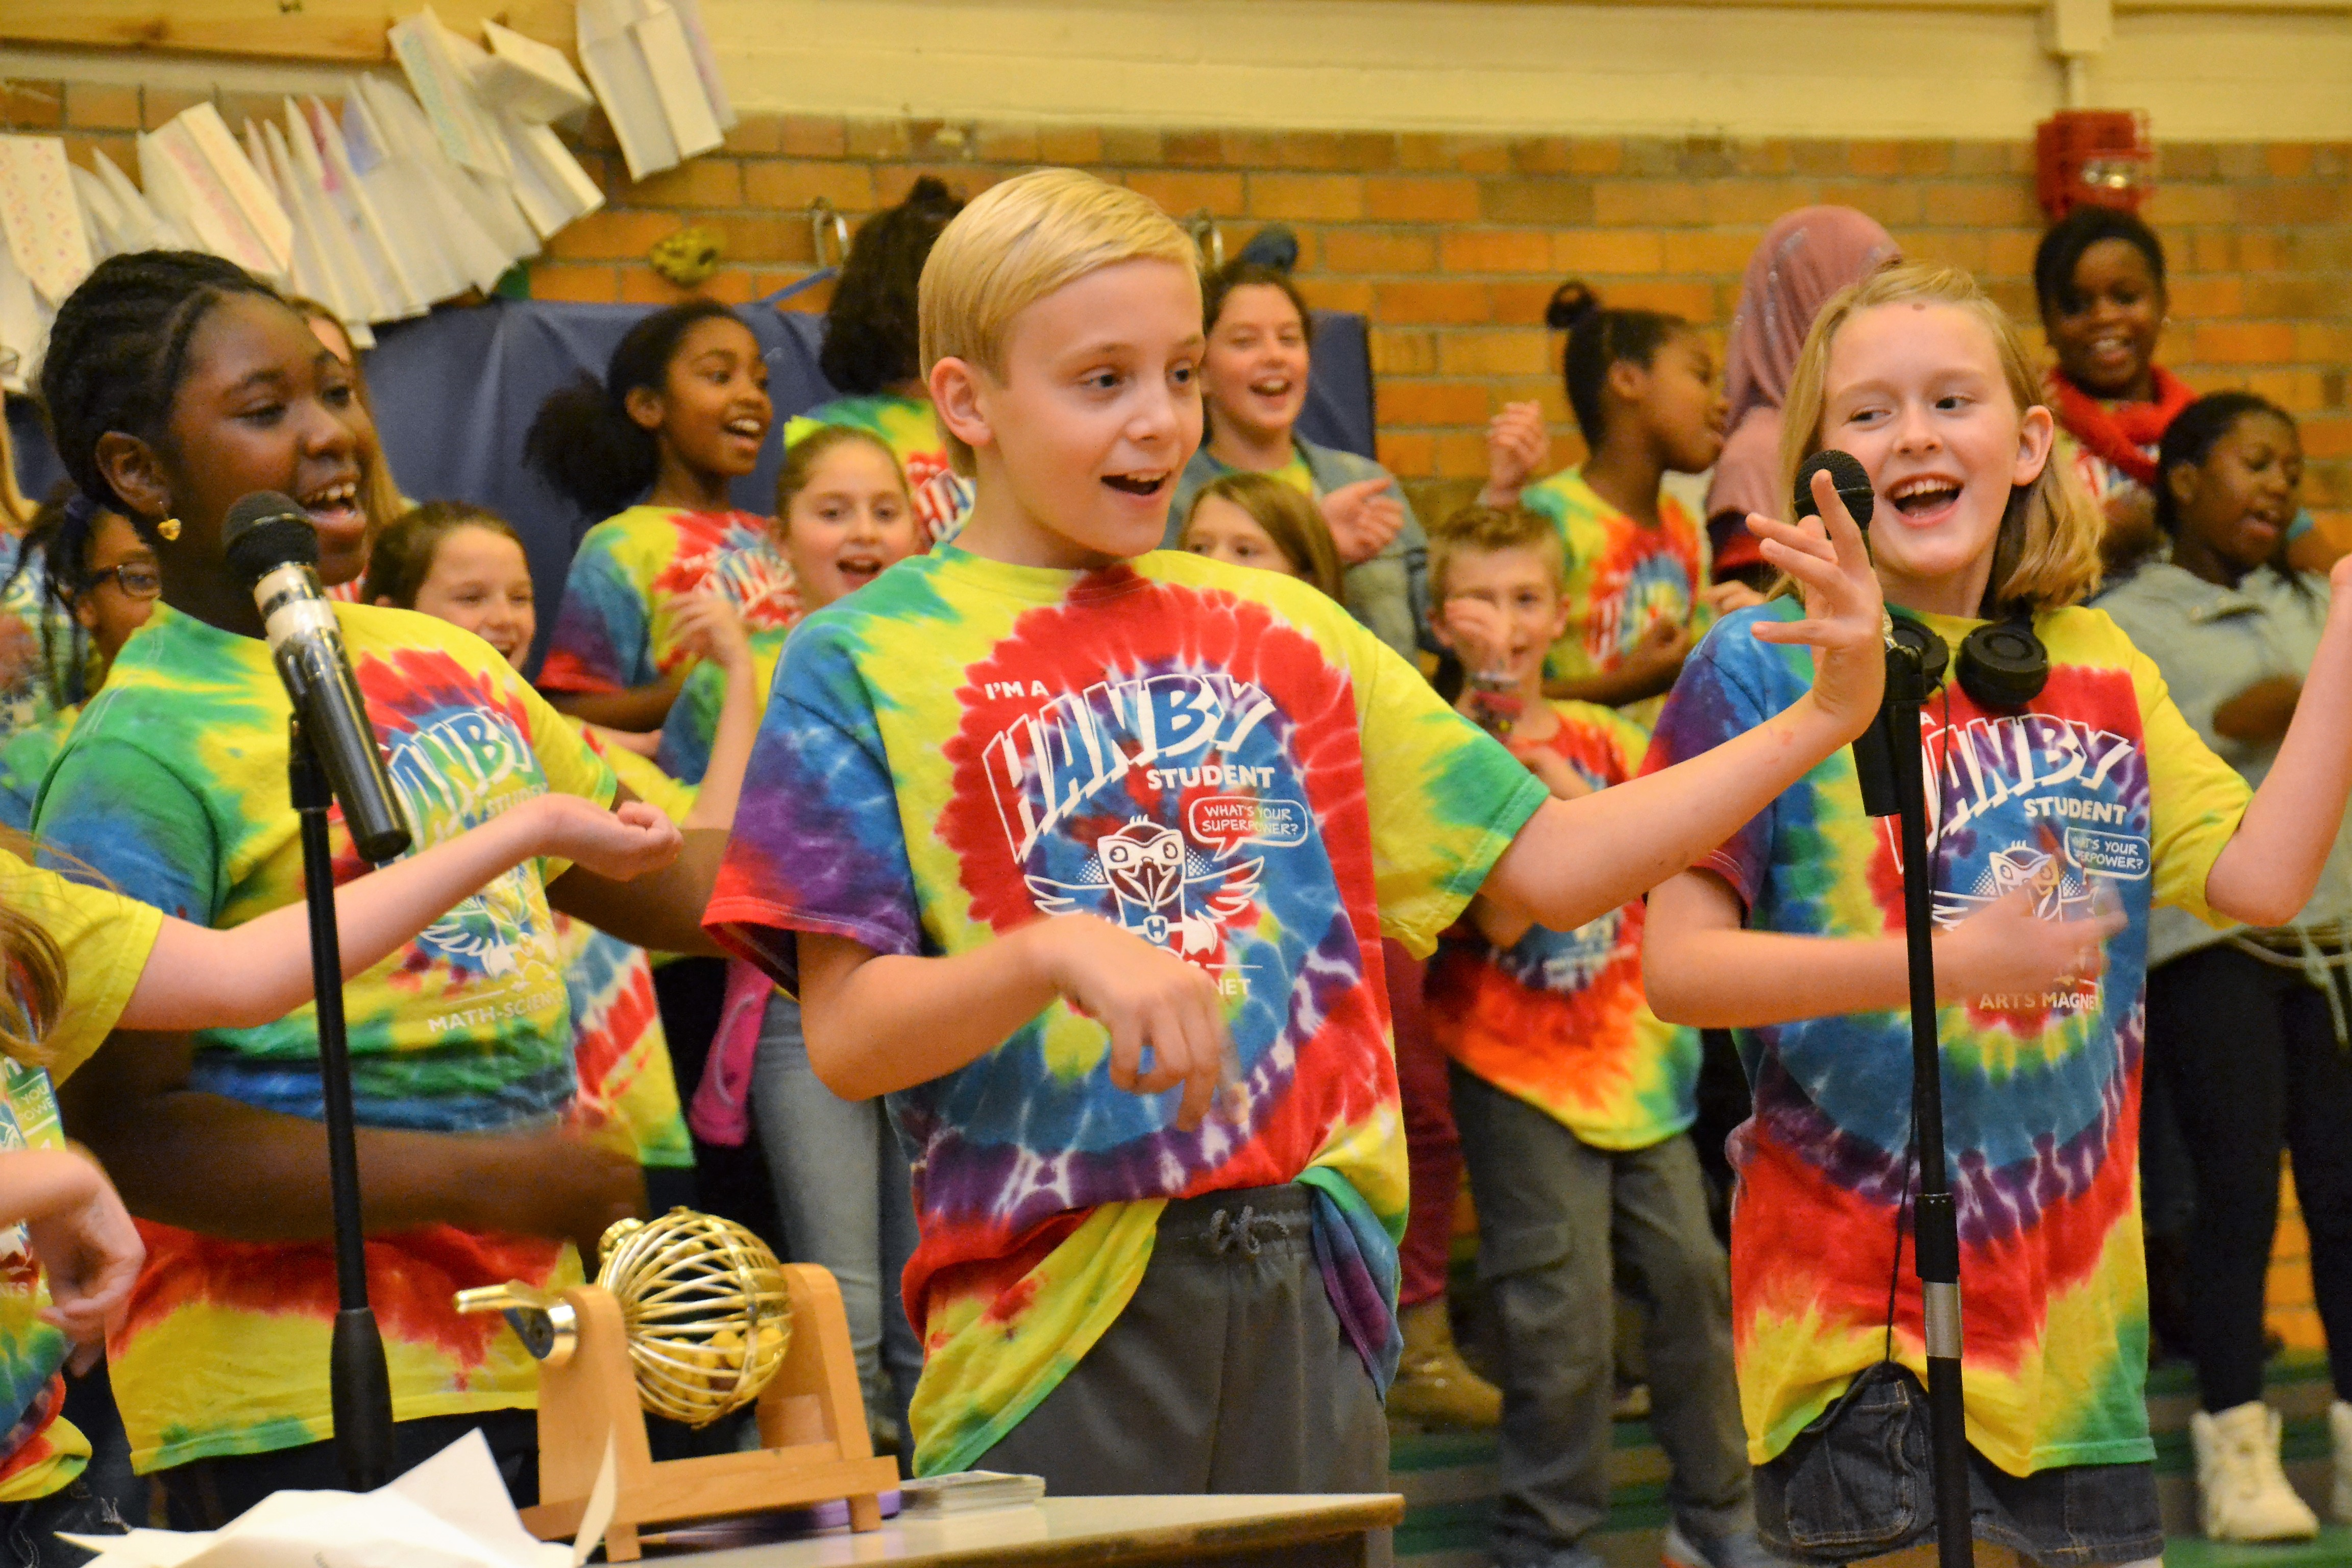 Hanby students perform in A Kid's Life